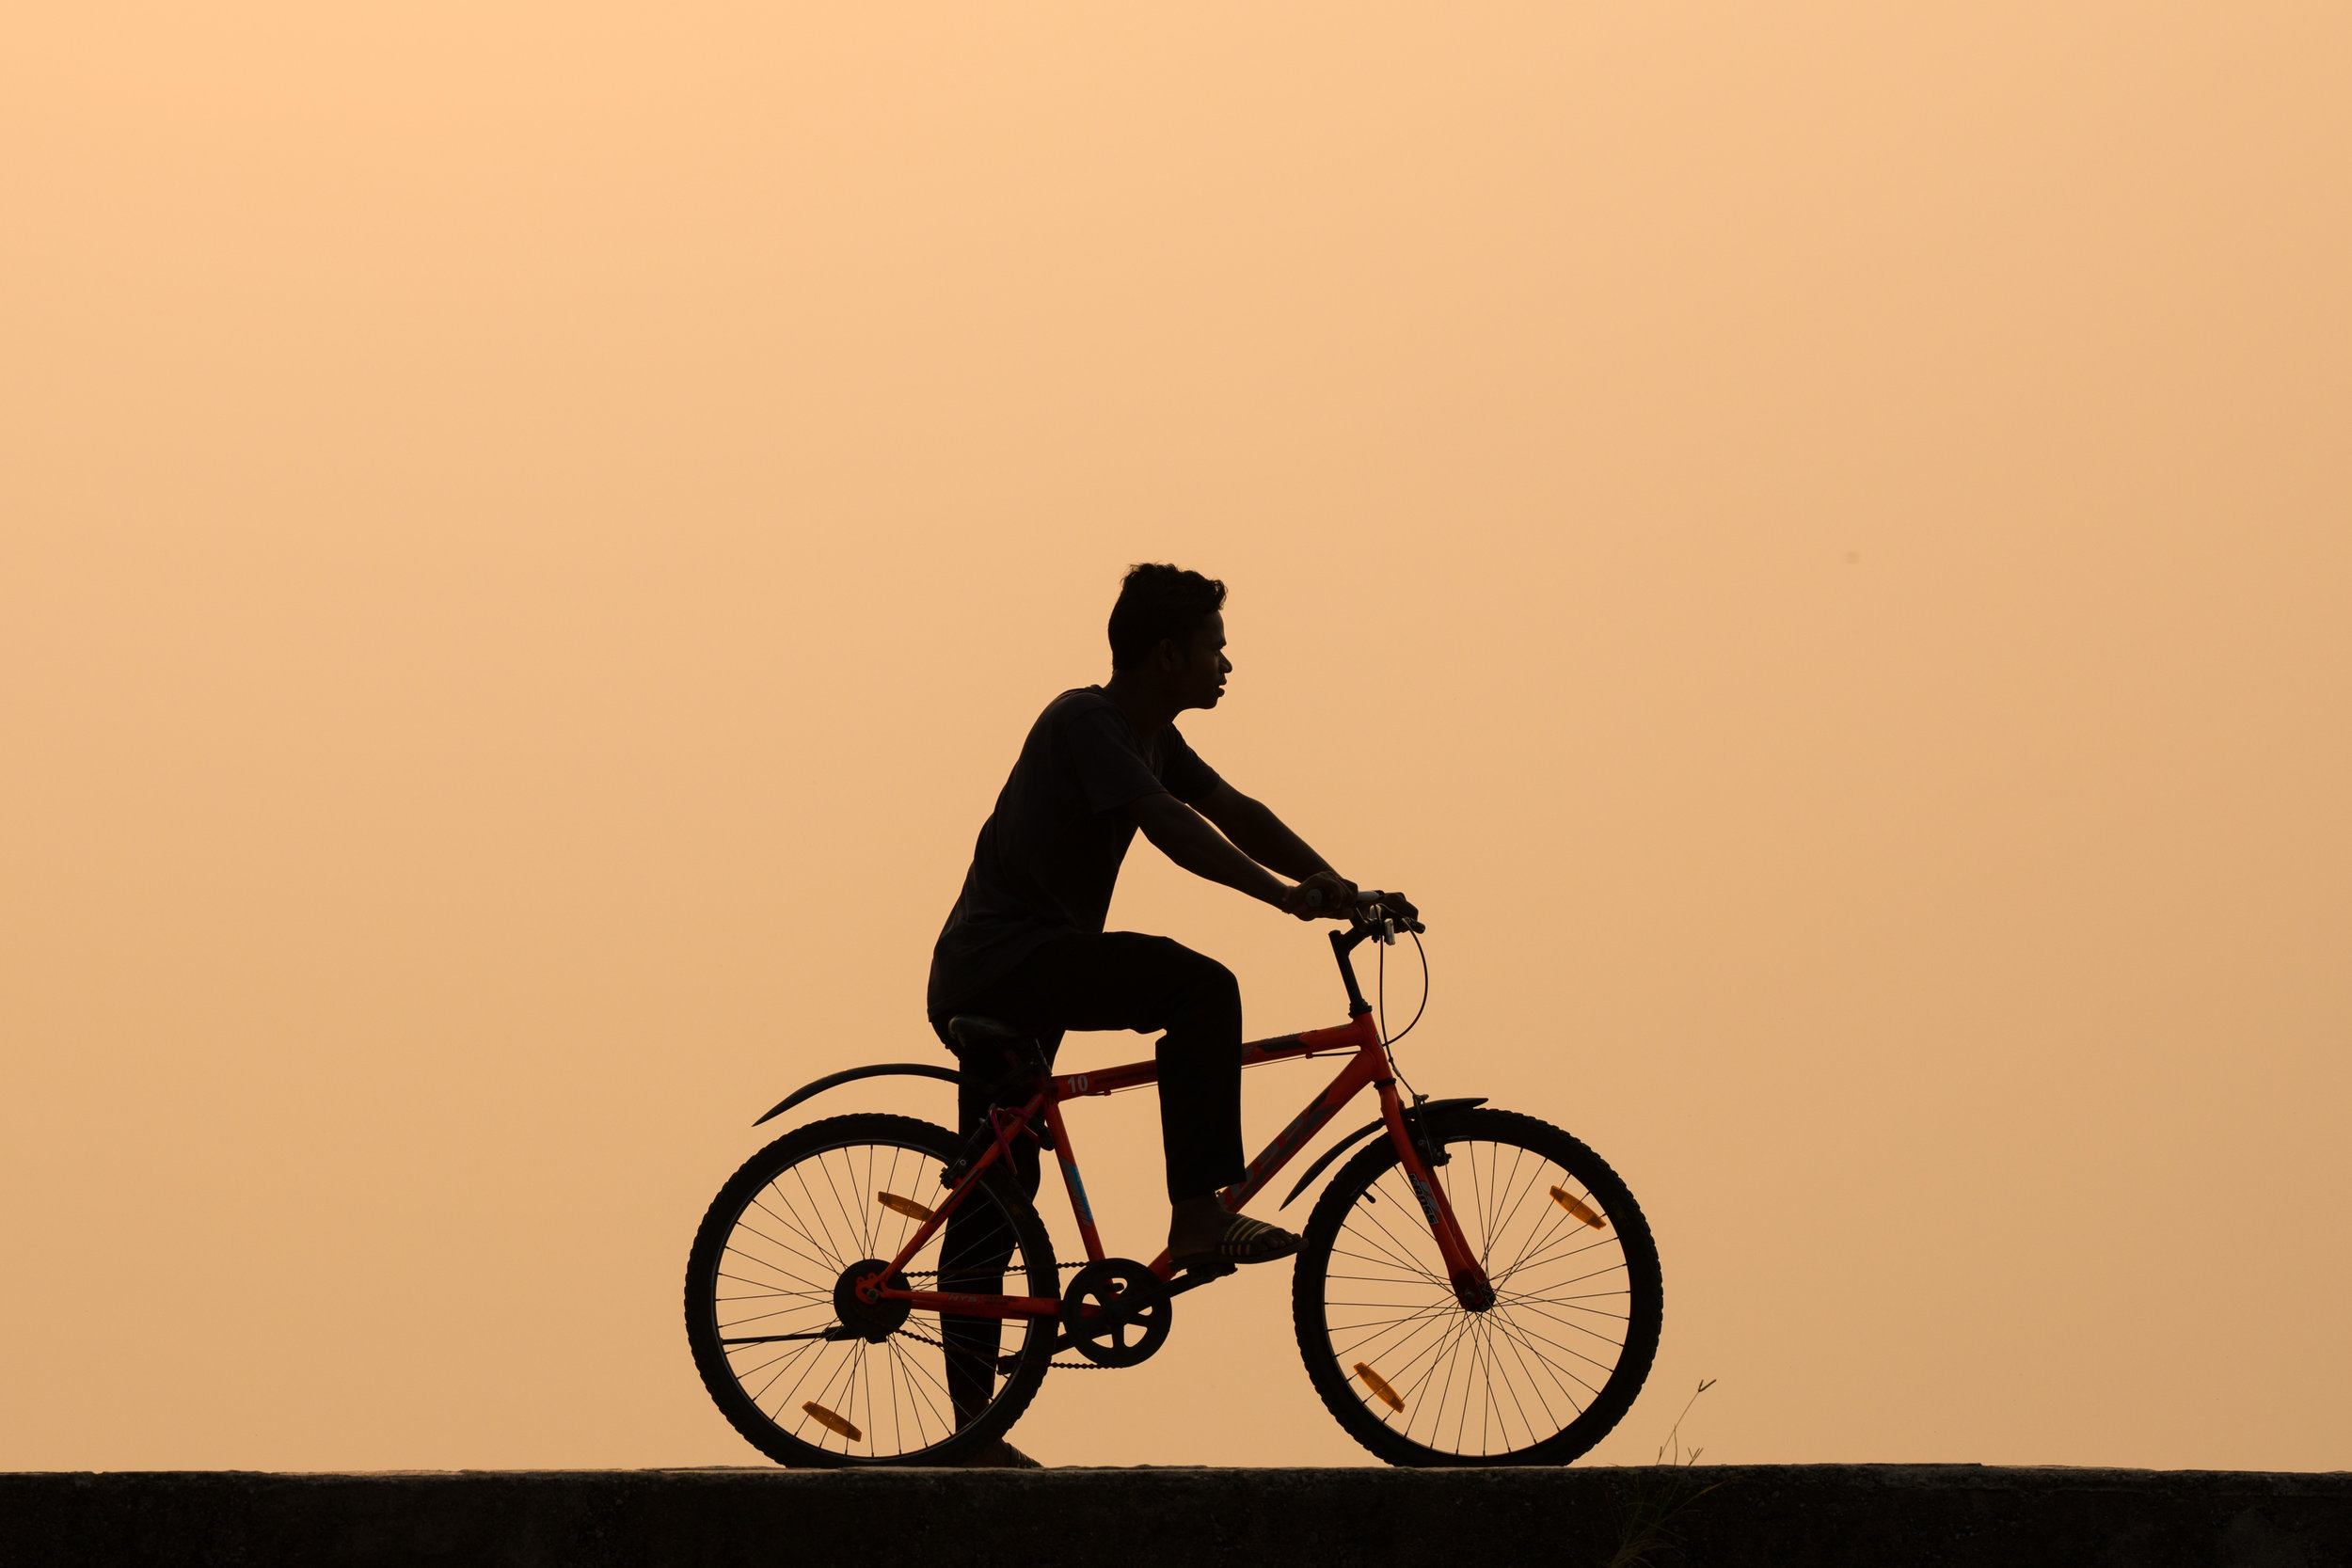 Silhouetted cycle at sunset, Kerala, India.